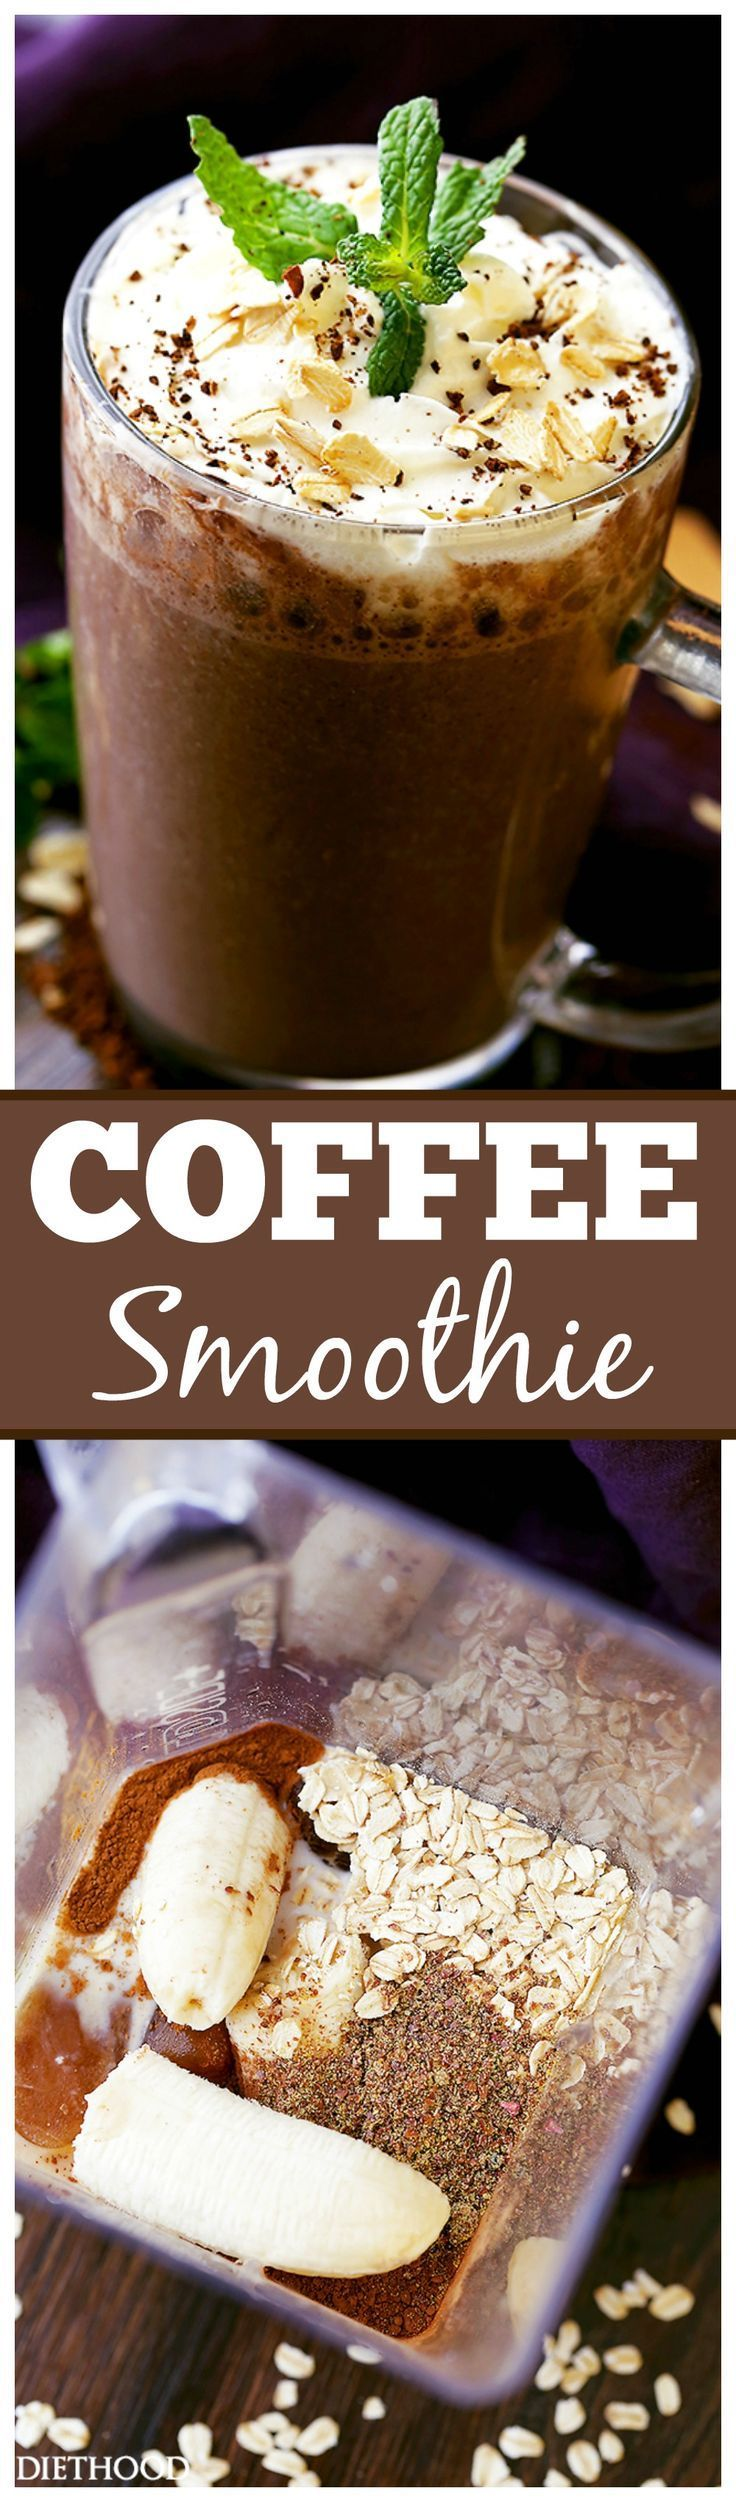 Coffee Smoothie – The perfect way to start your morning with coffee oats flaxseeds and bananas all in one! Combining our two morning loves coffees and smoothies for people on the go.